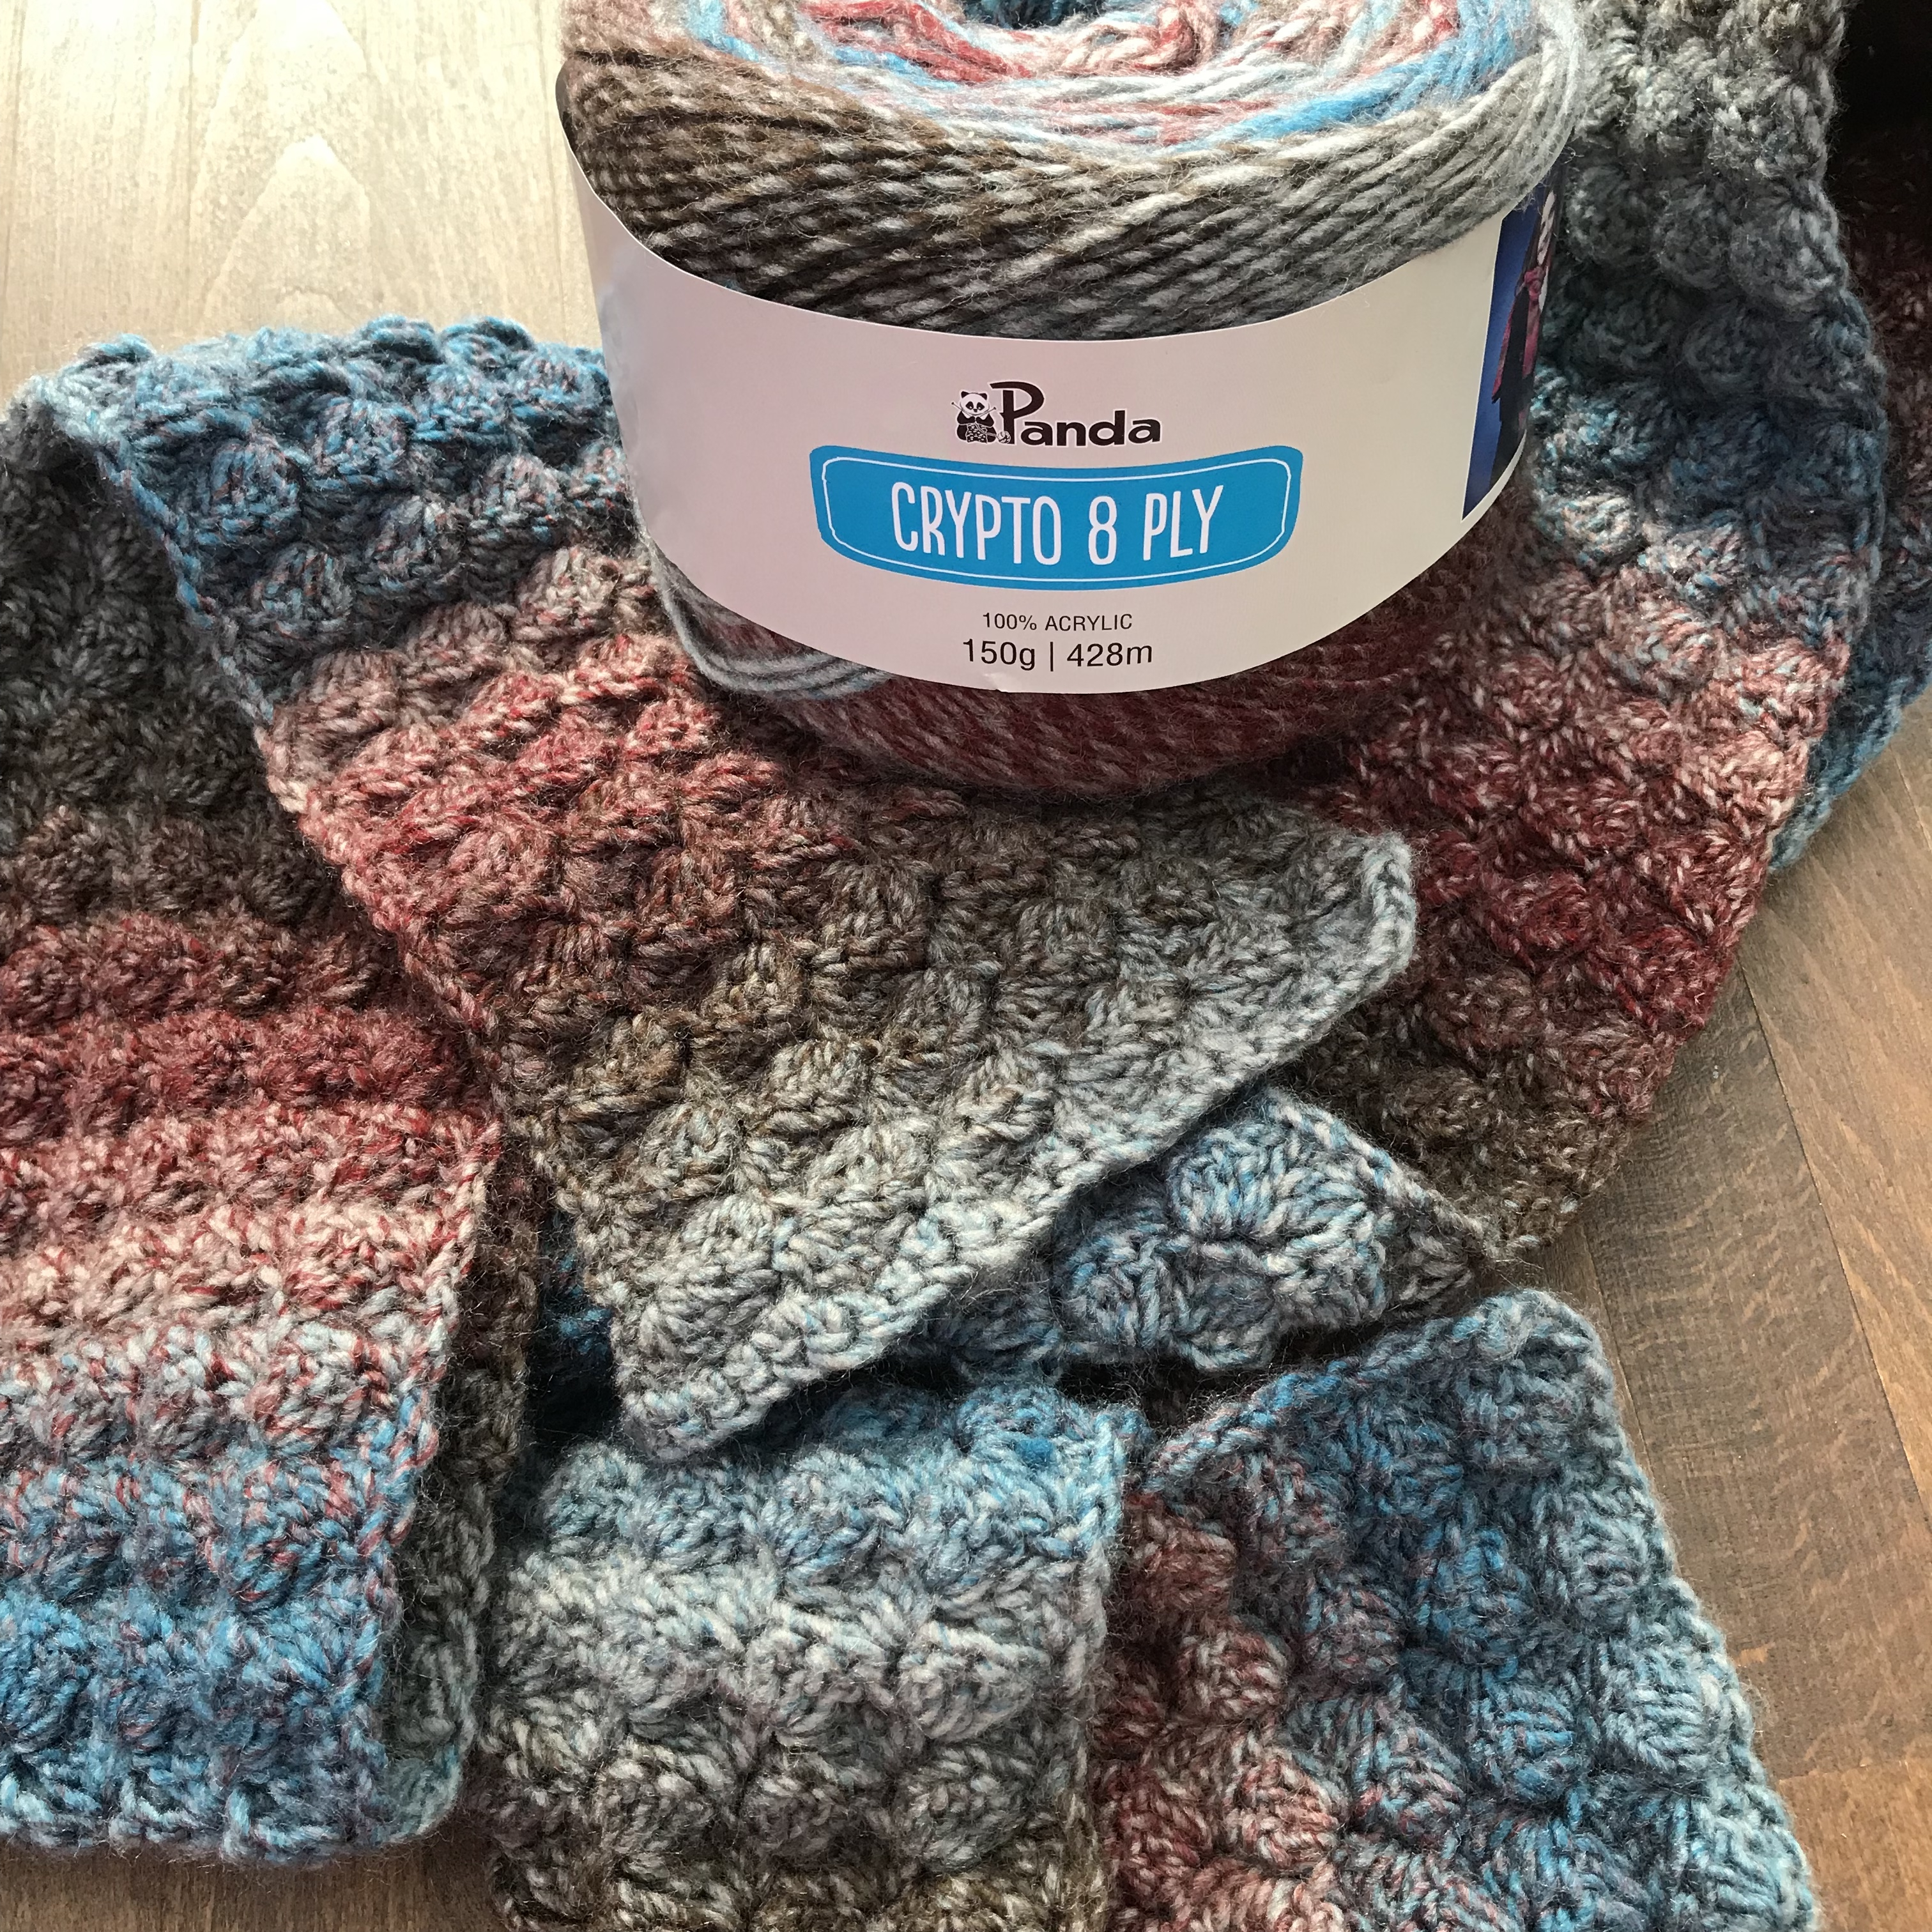 8 Ply Wool Knitting Patterns Free Bumpy Scarf Crochet Pattern In Crypto 8 Ply Knit Spin Weave